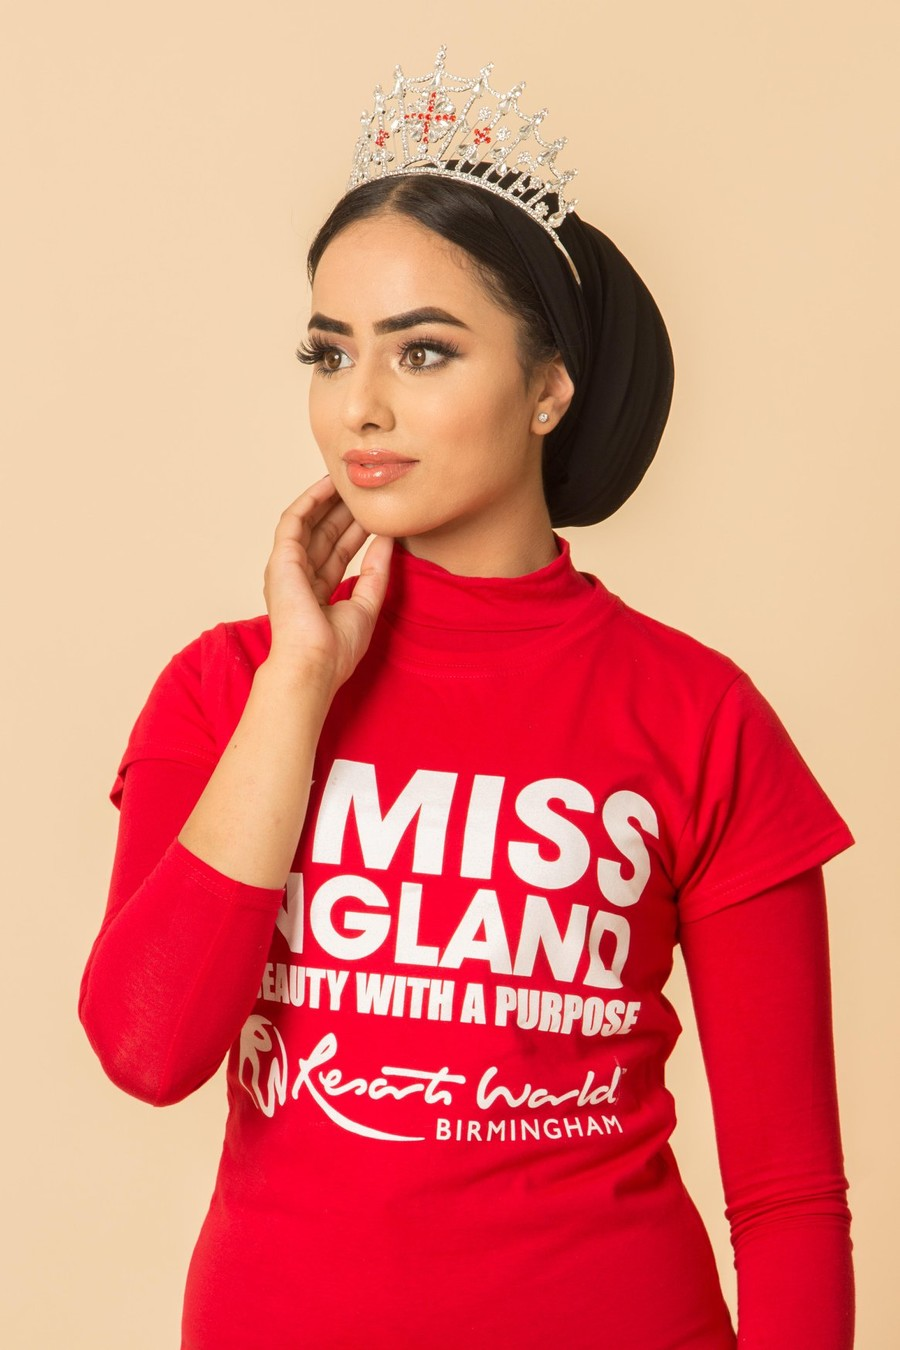 Muslim student will be first Miss England finalist to wear hijab